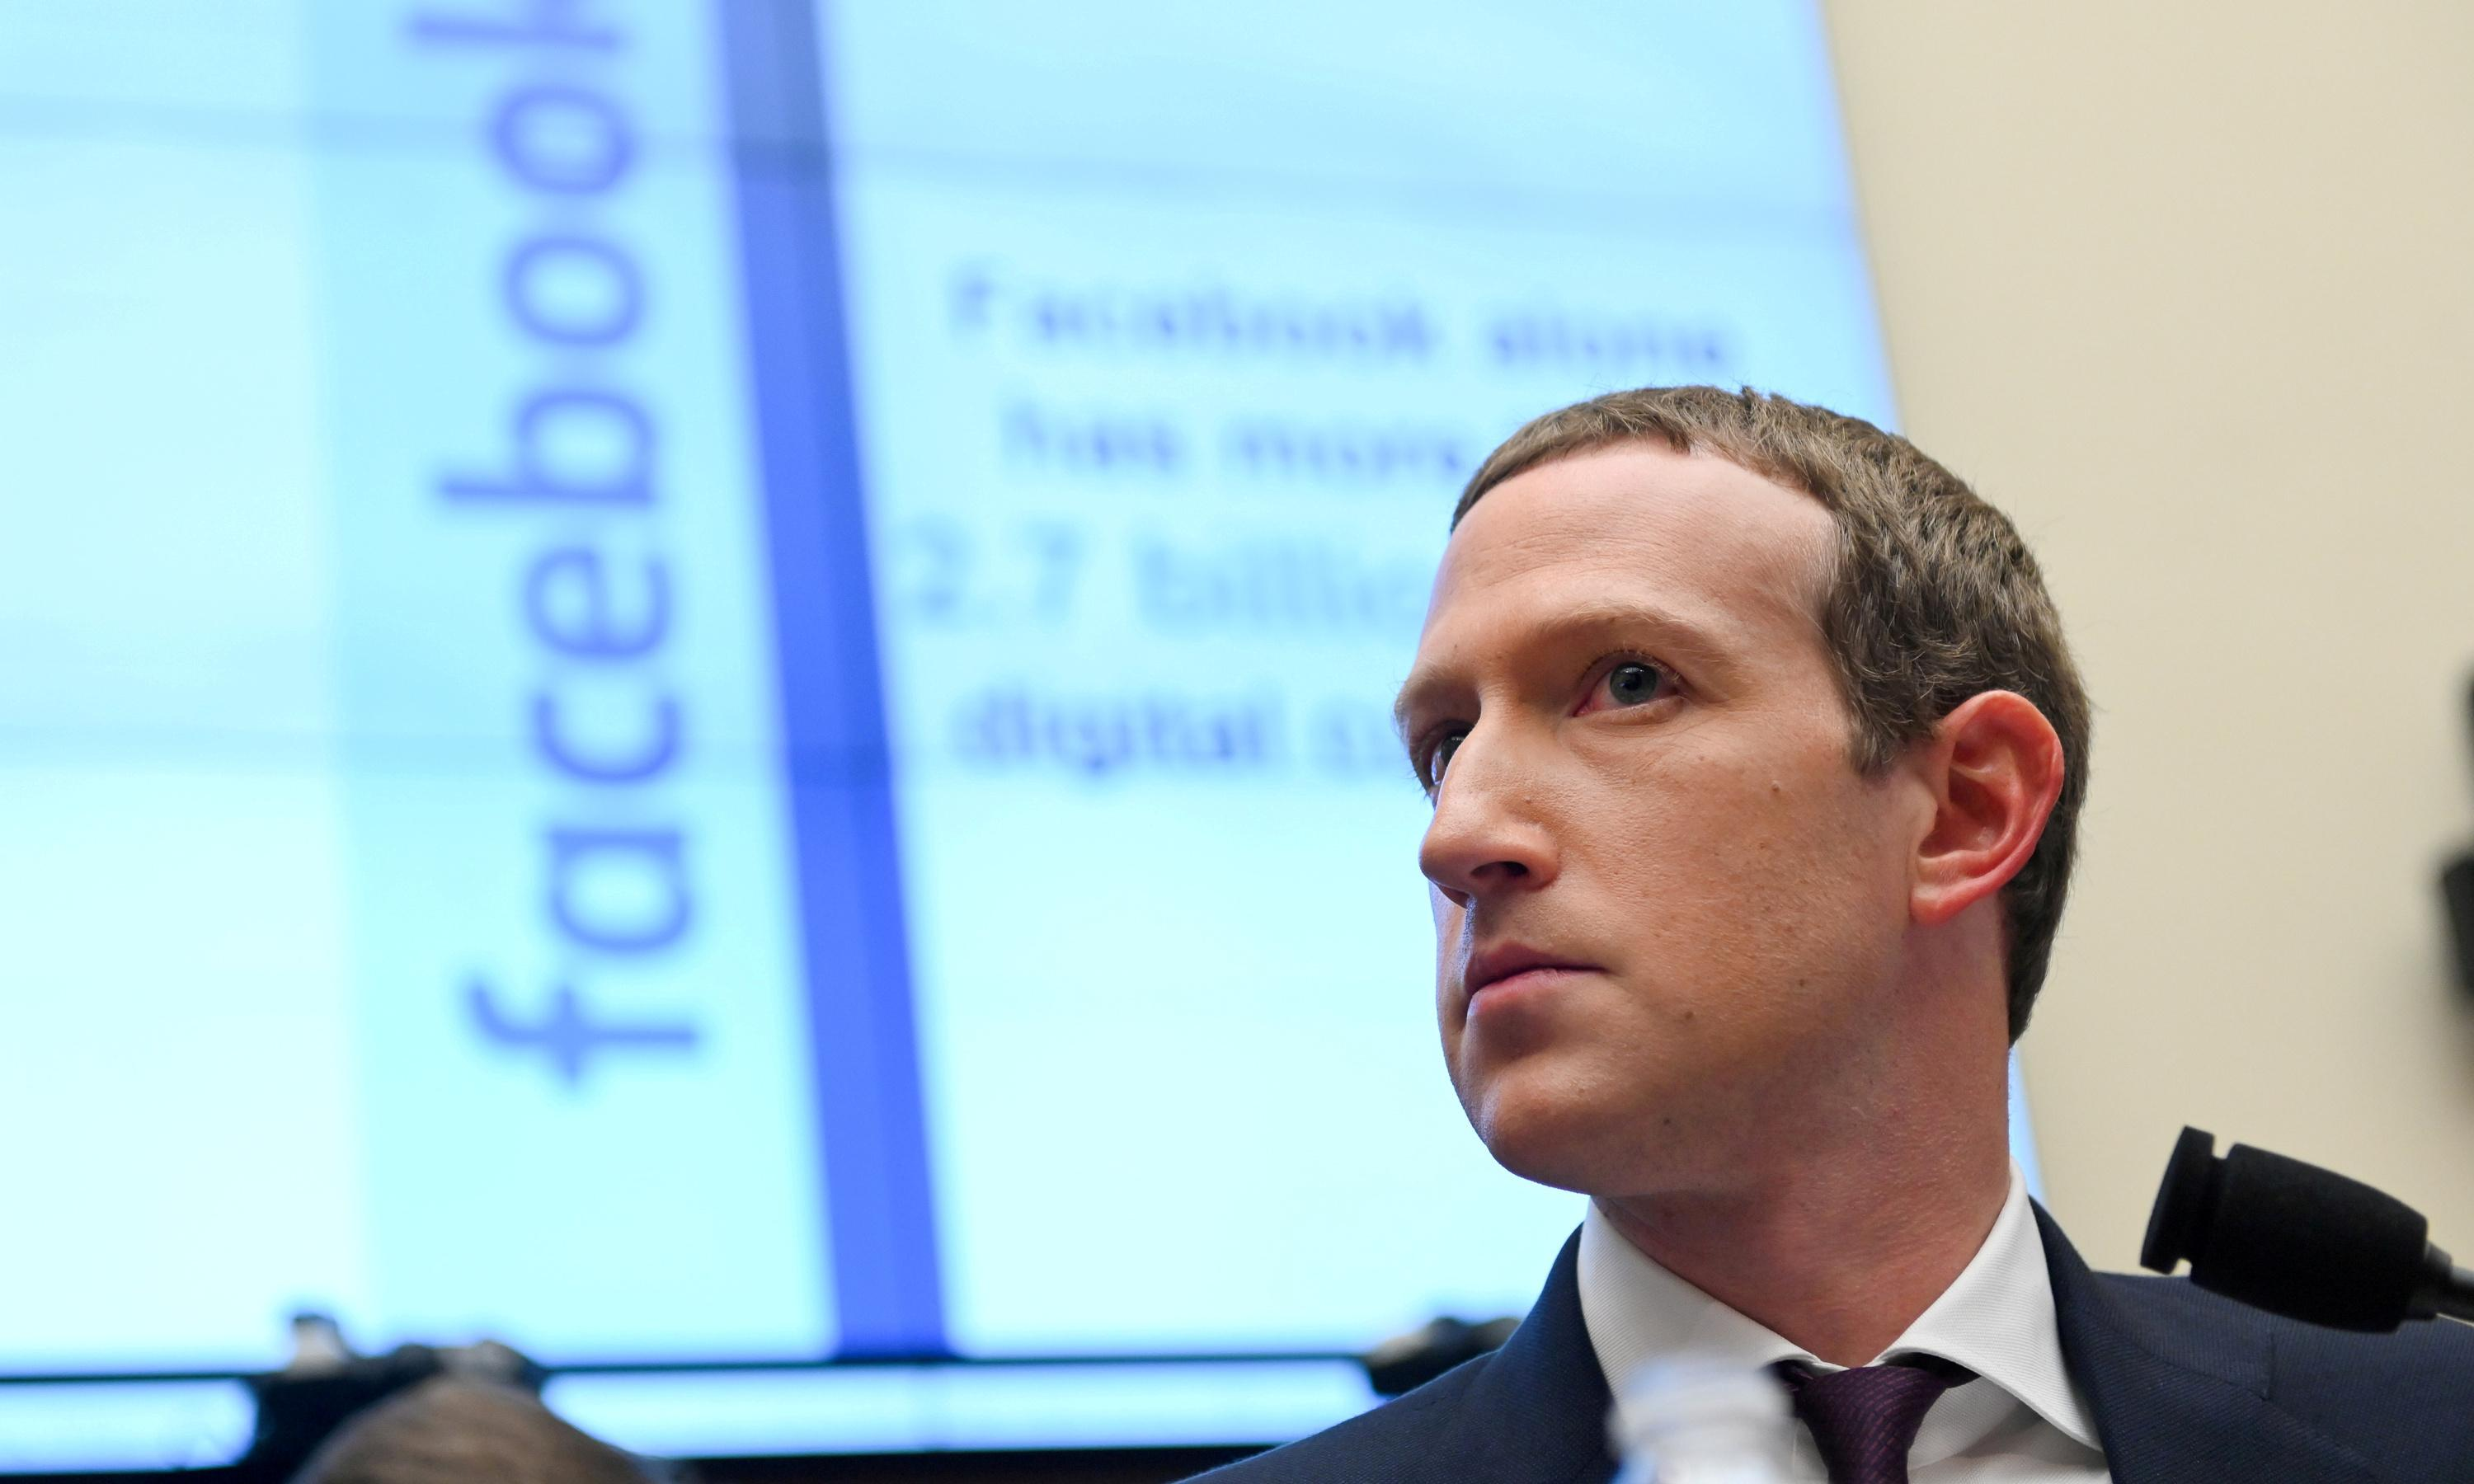 Facebook refuses to restrict untruthful political ads and micro-targeting